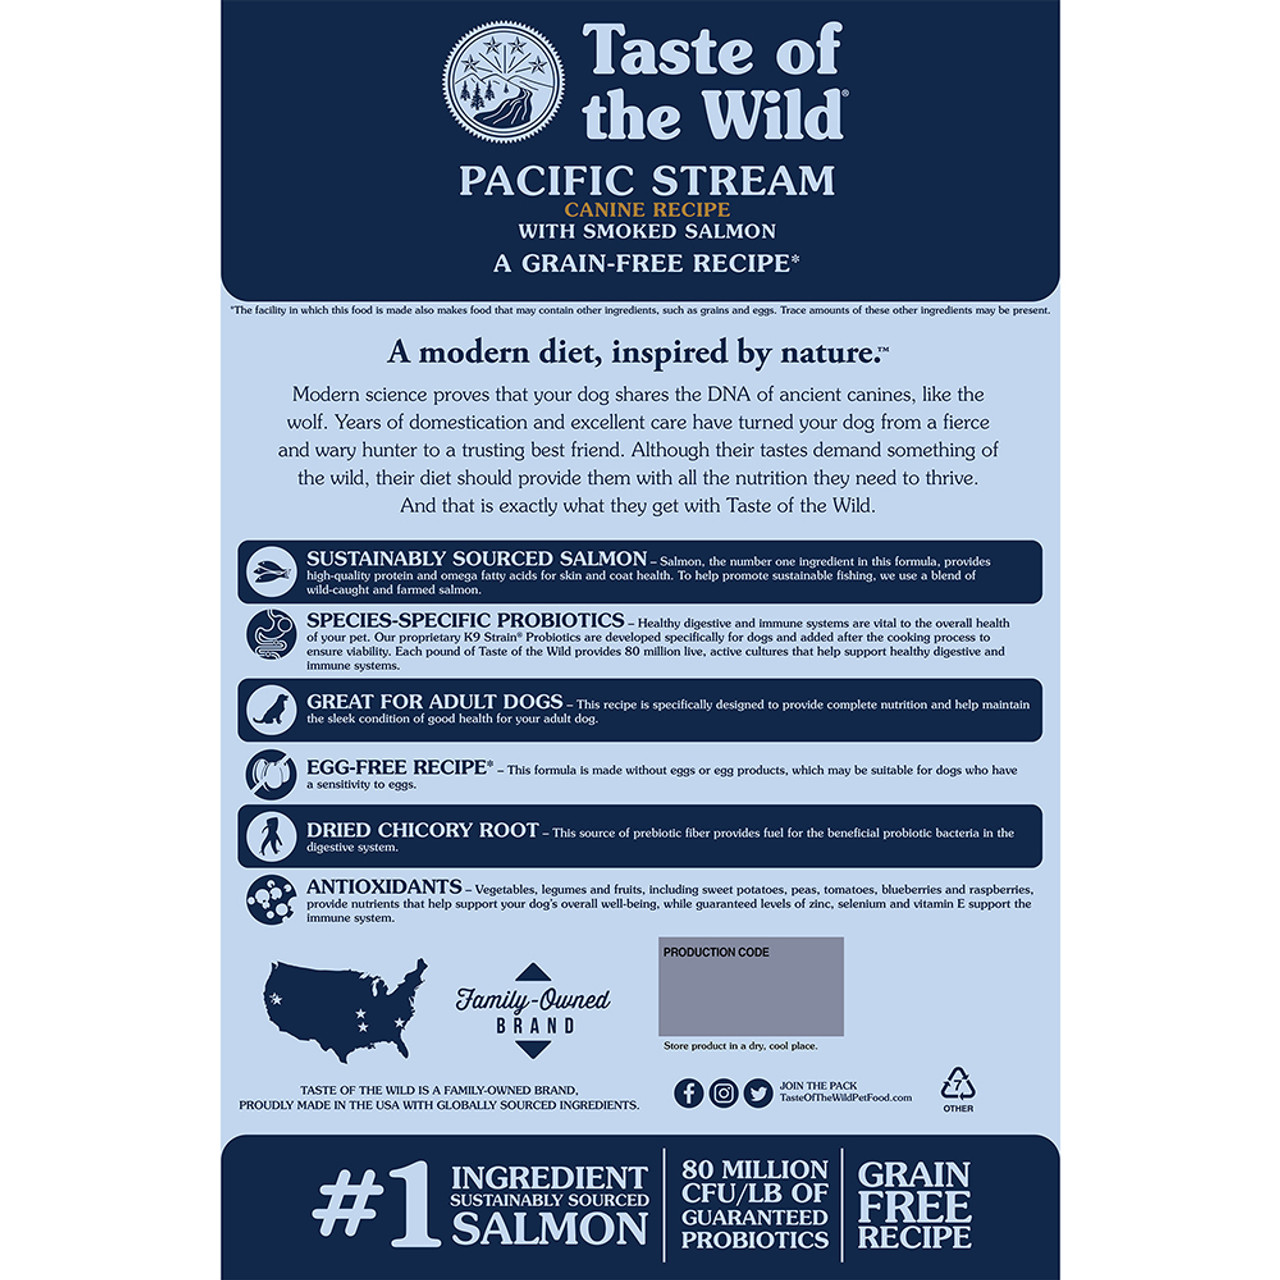 Taste of the Wild Pacific Stream Canine Recipe Dry Dog Food - Back